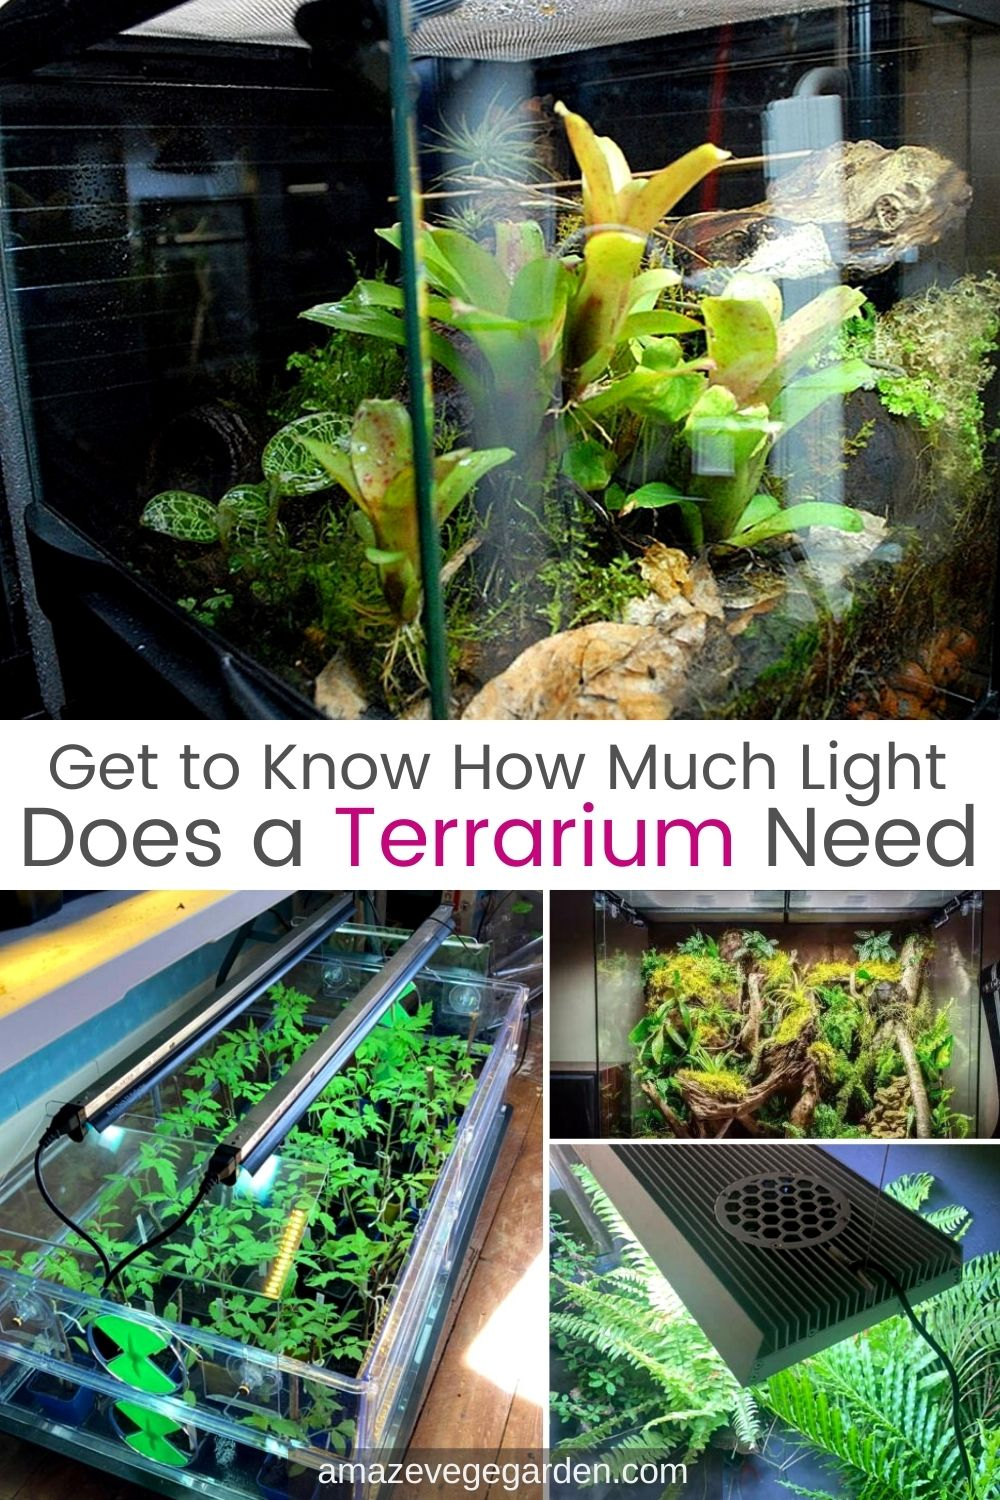 Get to Know How Much Light Does a Terrarium Need